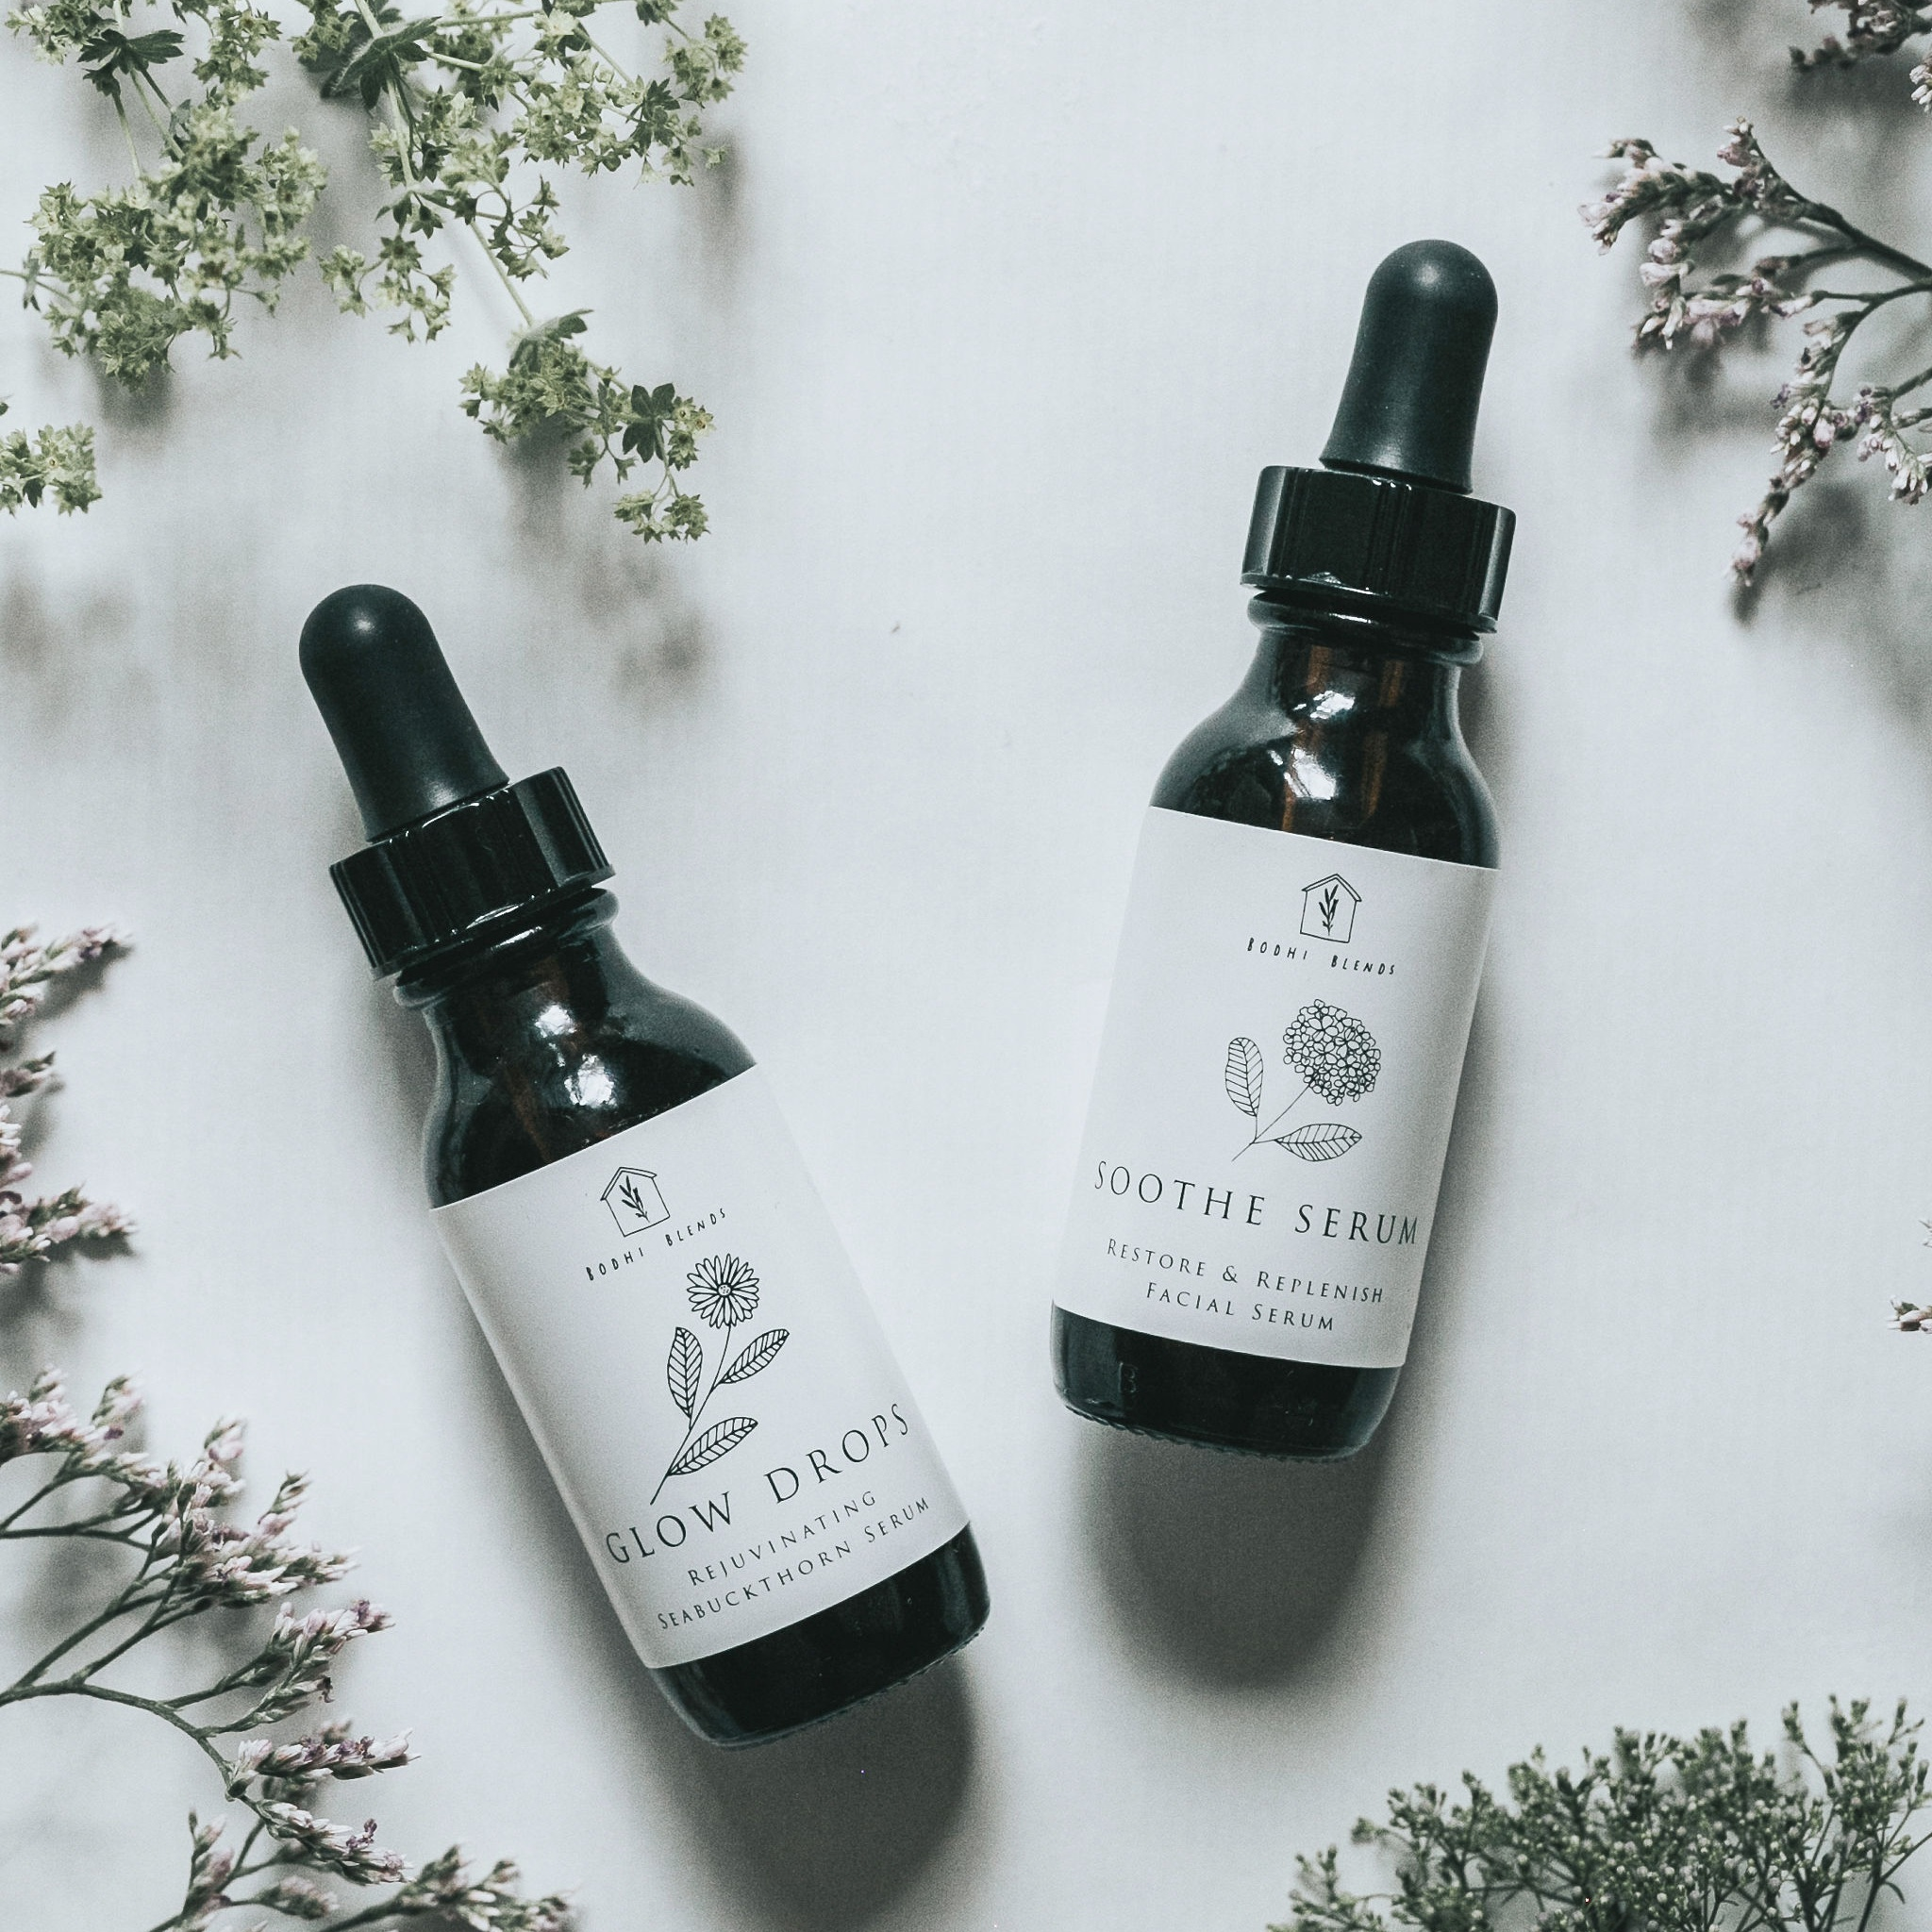 ORGANIC BOTANICAL SKINCARE & HERBAL REMEDIES - PLANT BASED, ENVIRONMENTALLY CONSCIOUS PRODUCTS HANDCRAFTED IN IRELAND